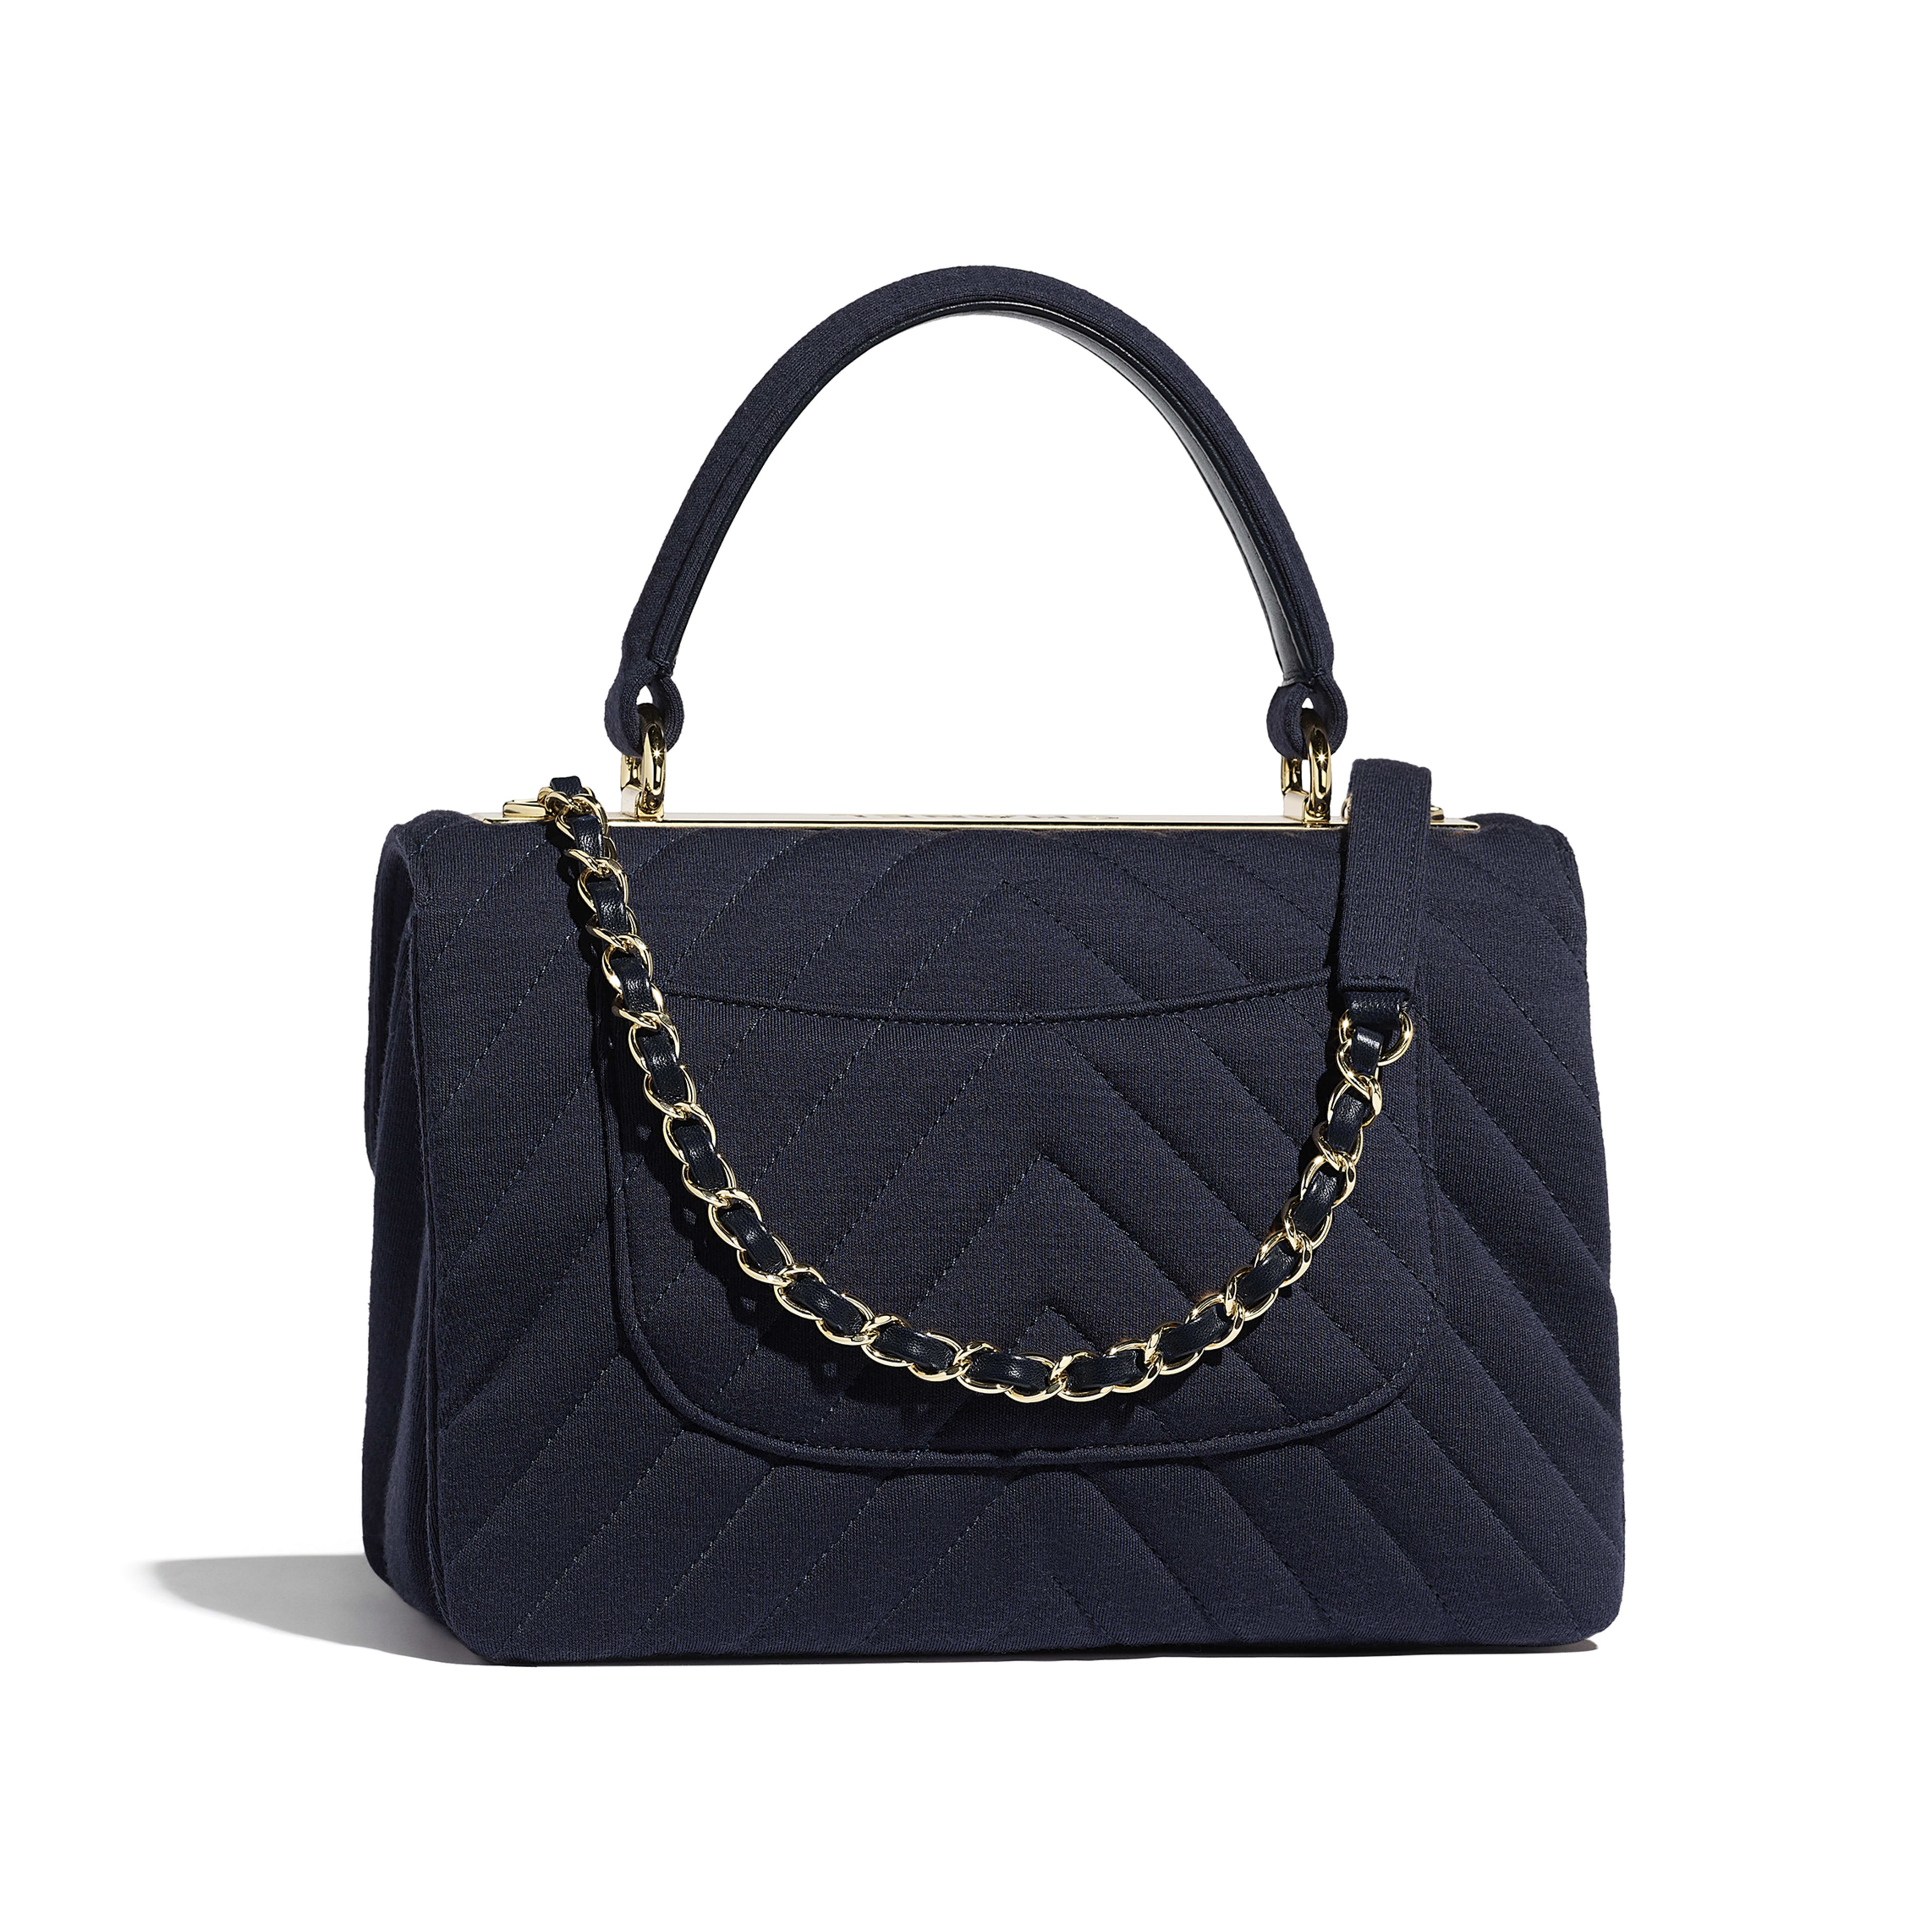 Small Flap Bag with Top Handle - Navy Blue - Jersey & Gold-Tone Metal - Alternative view - see full sized version